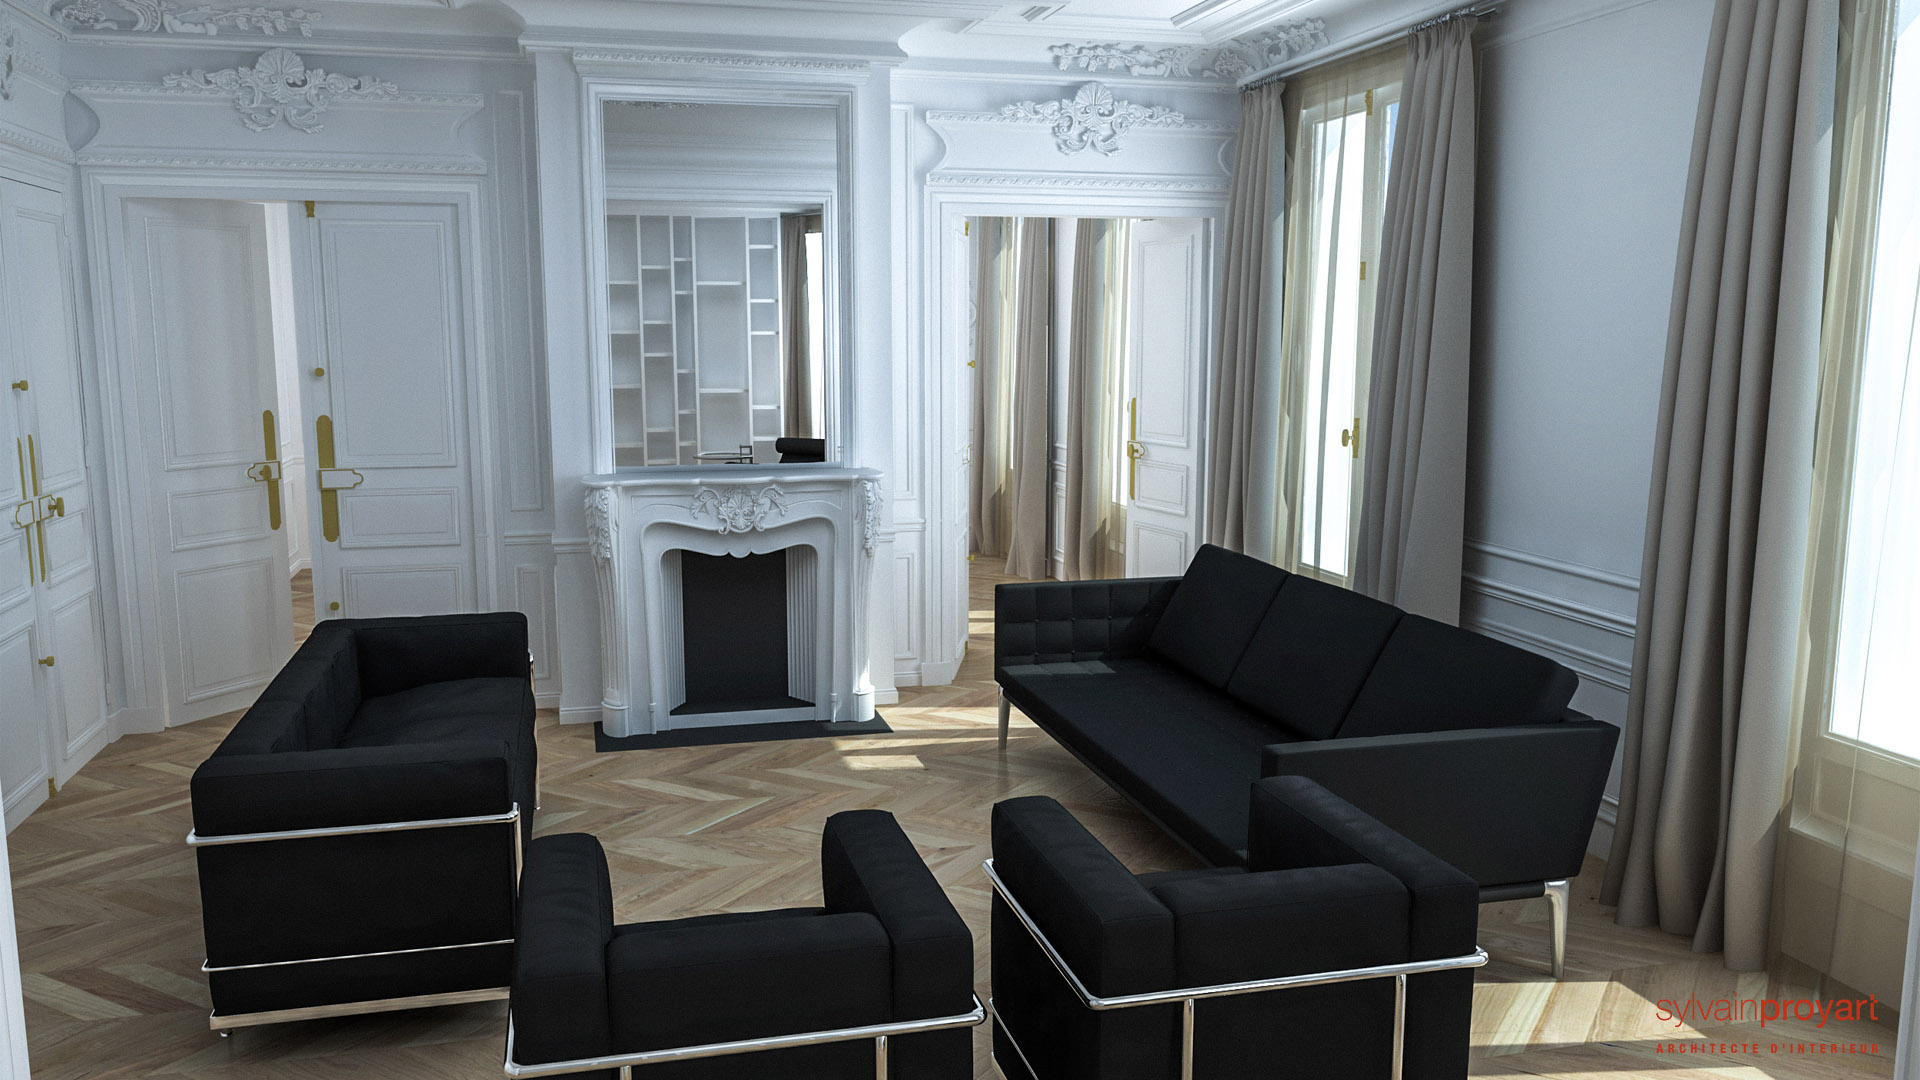 gr gory pasche infographiste 3d de formation architecte d 39 int rieur designer gr gory pasche. Black Bedroom Furniture Sets. Home Design Ideas